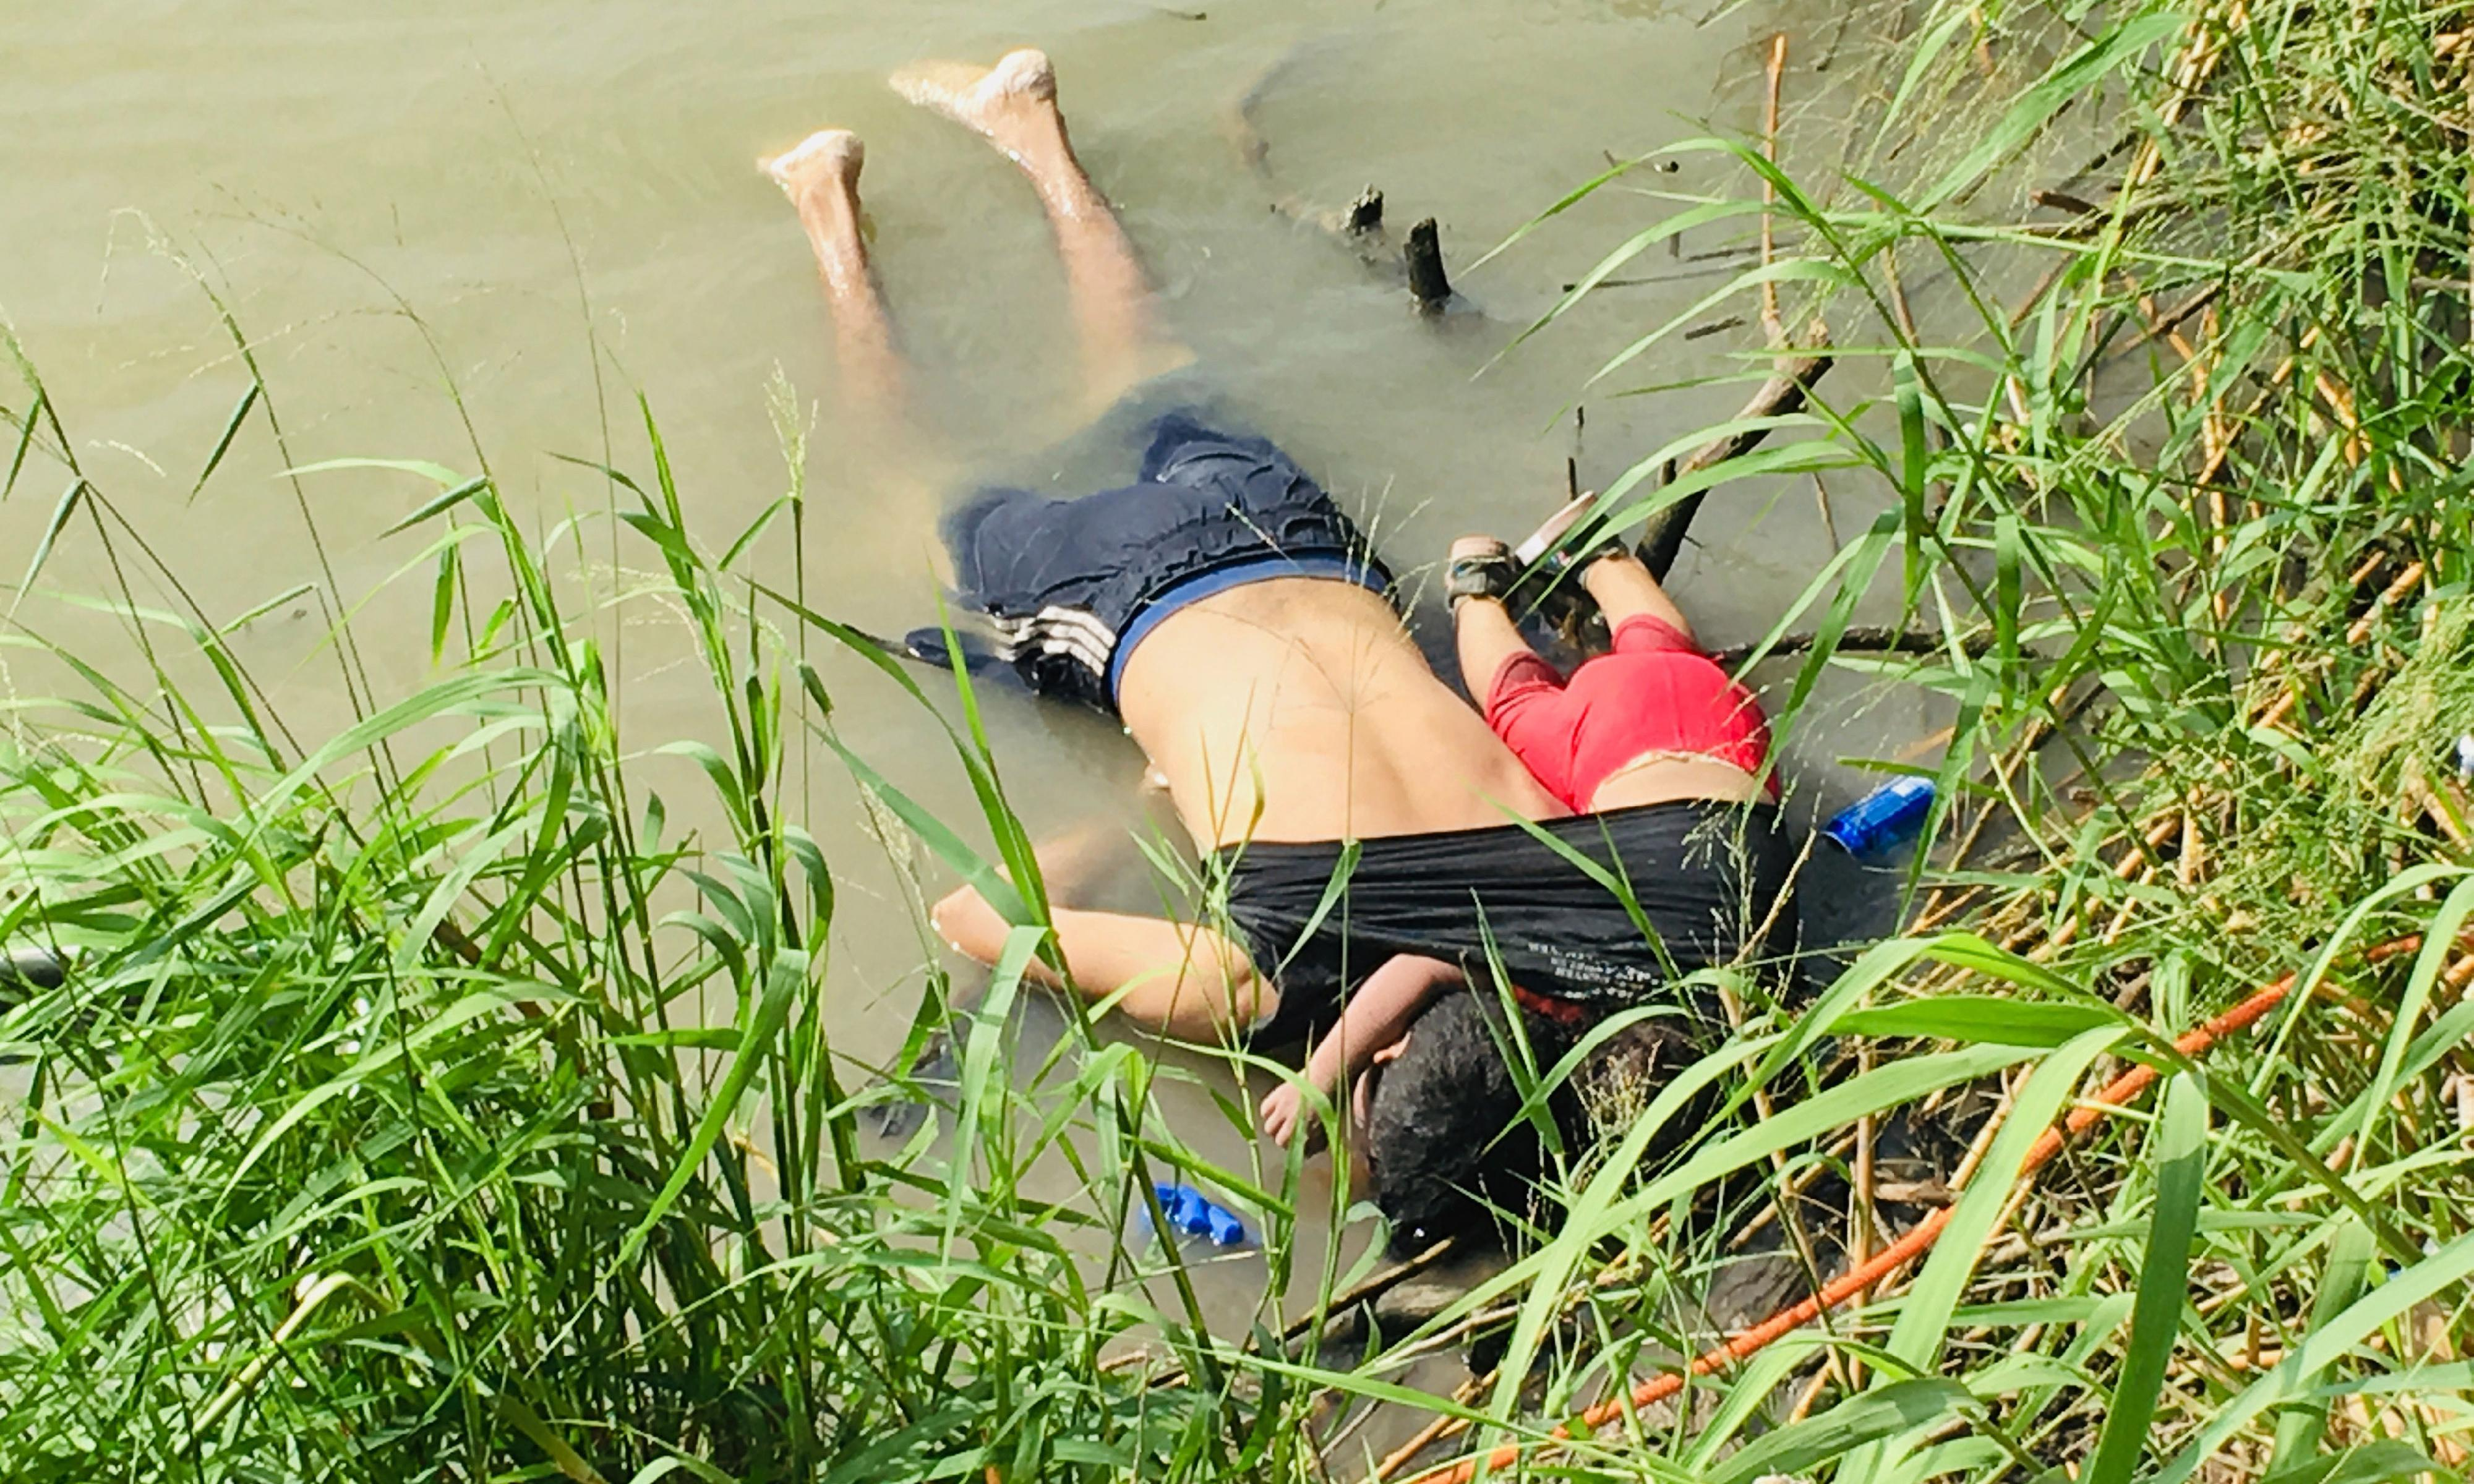 Shocking photo of drowned father and daughter highlights migrants' border peril